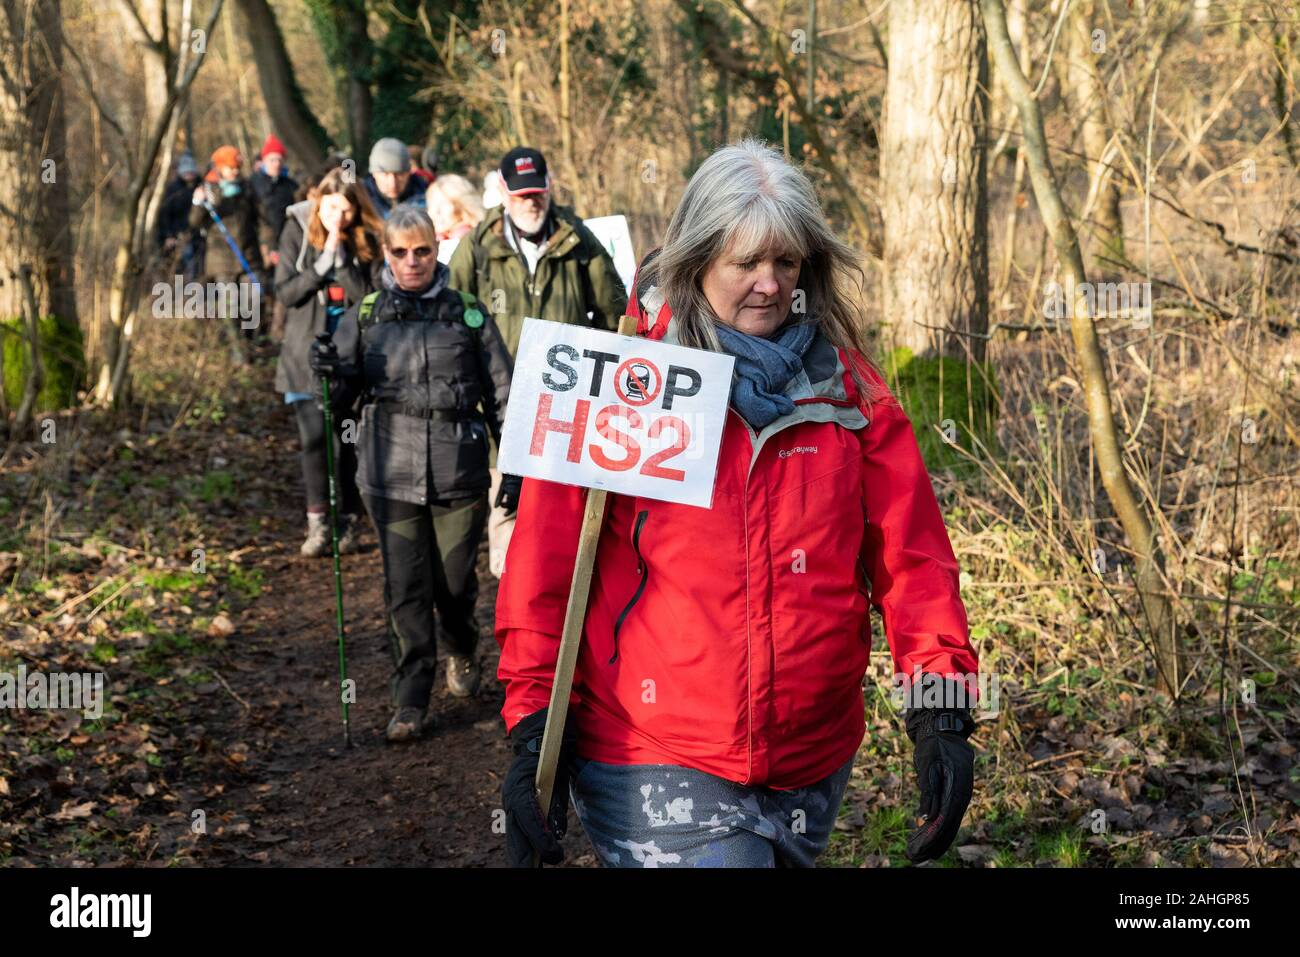 Denham, UK. 29th December 2019. Stand for the Trees, a Walk for Wildlife and Water, organised by Chris Packham and supported by Extinction Rebellion, #ReThinkHS2, Save the Colne Valley, STOP HS2 and Hillingdon Green Party. Speakers described the threats to the habitats that are the homes of endangered eels, bats, otters, water voles, the loss of 28,000 trees to HS2 and the chalk aquifer that contributes to much of London's water. Pictured, woman in red jacket holding Stop HS2 placard while walking though woodland. Credit: Stephen Bell/Alamy Stock Photo